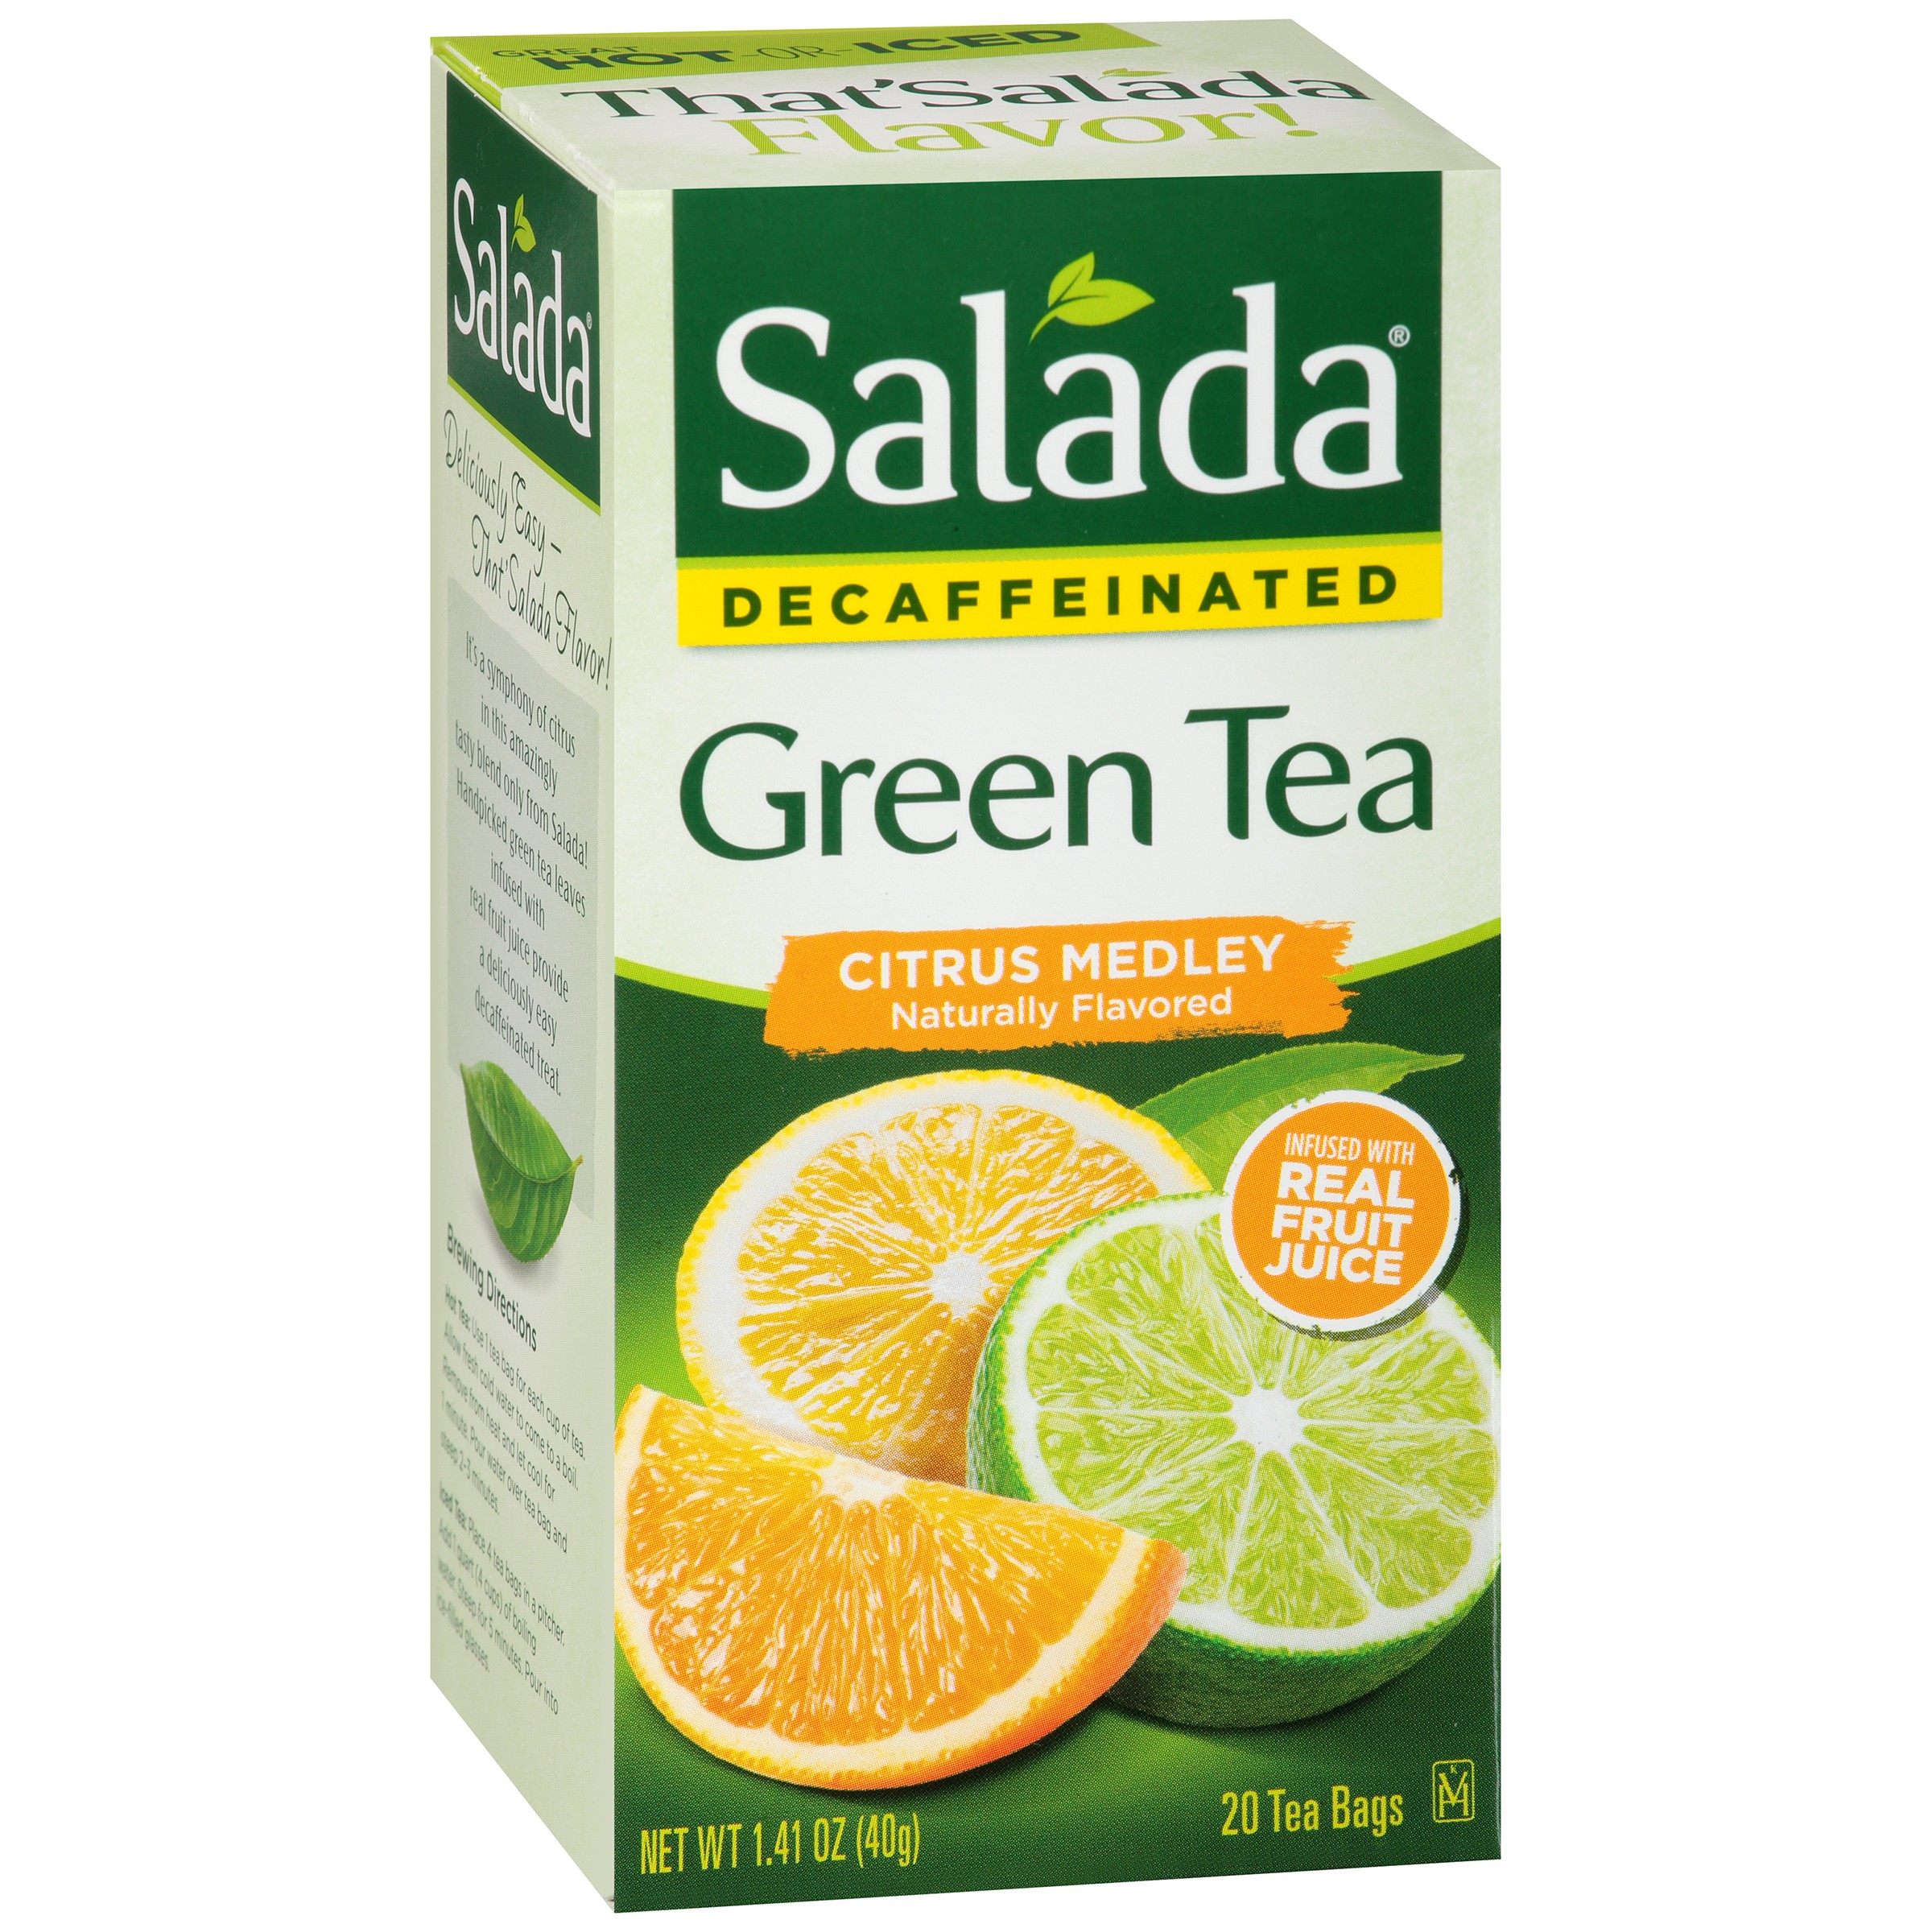 Salada Citrus Medley Green 20 count tea bags by Redco Foods, Inc.